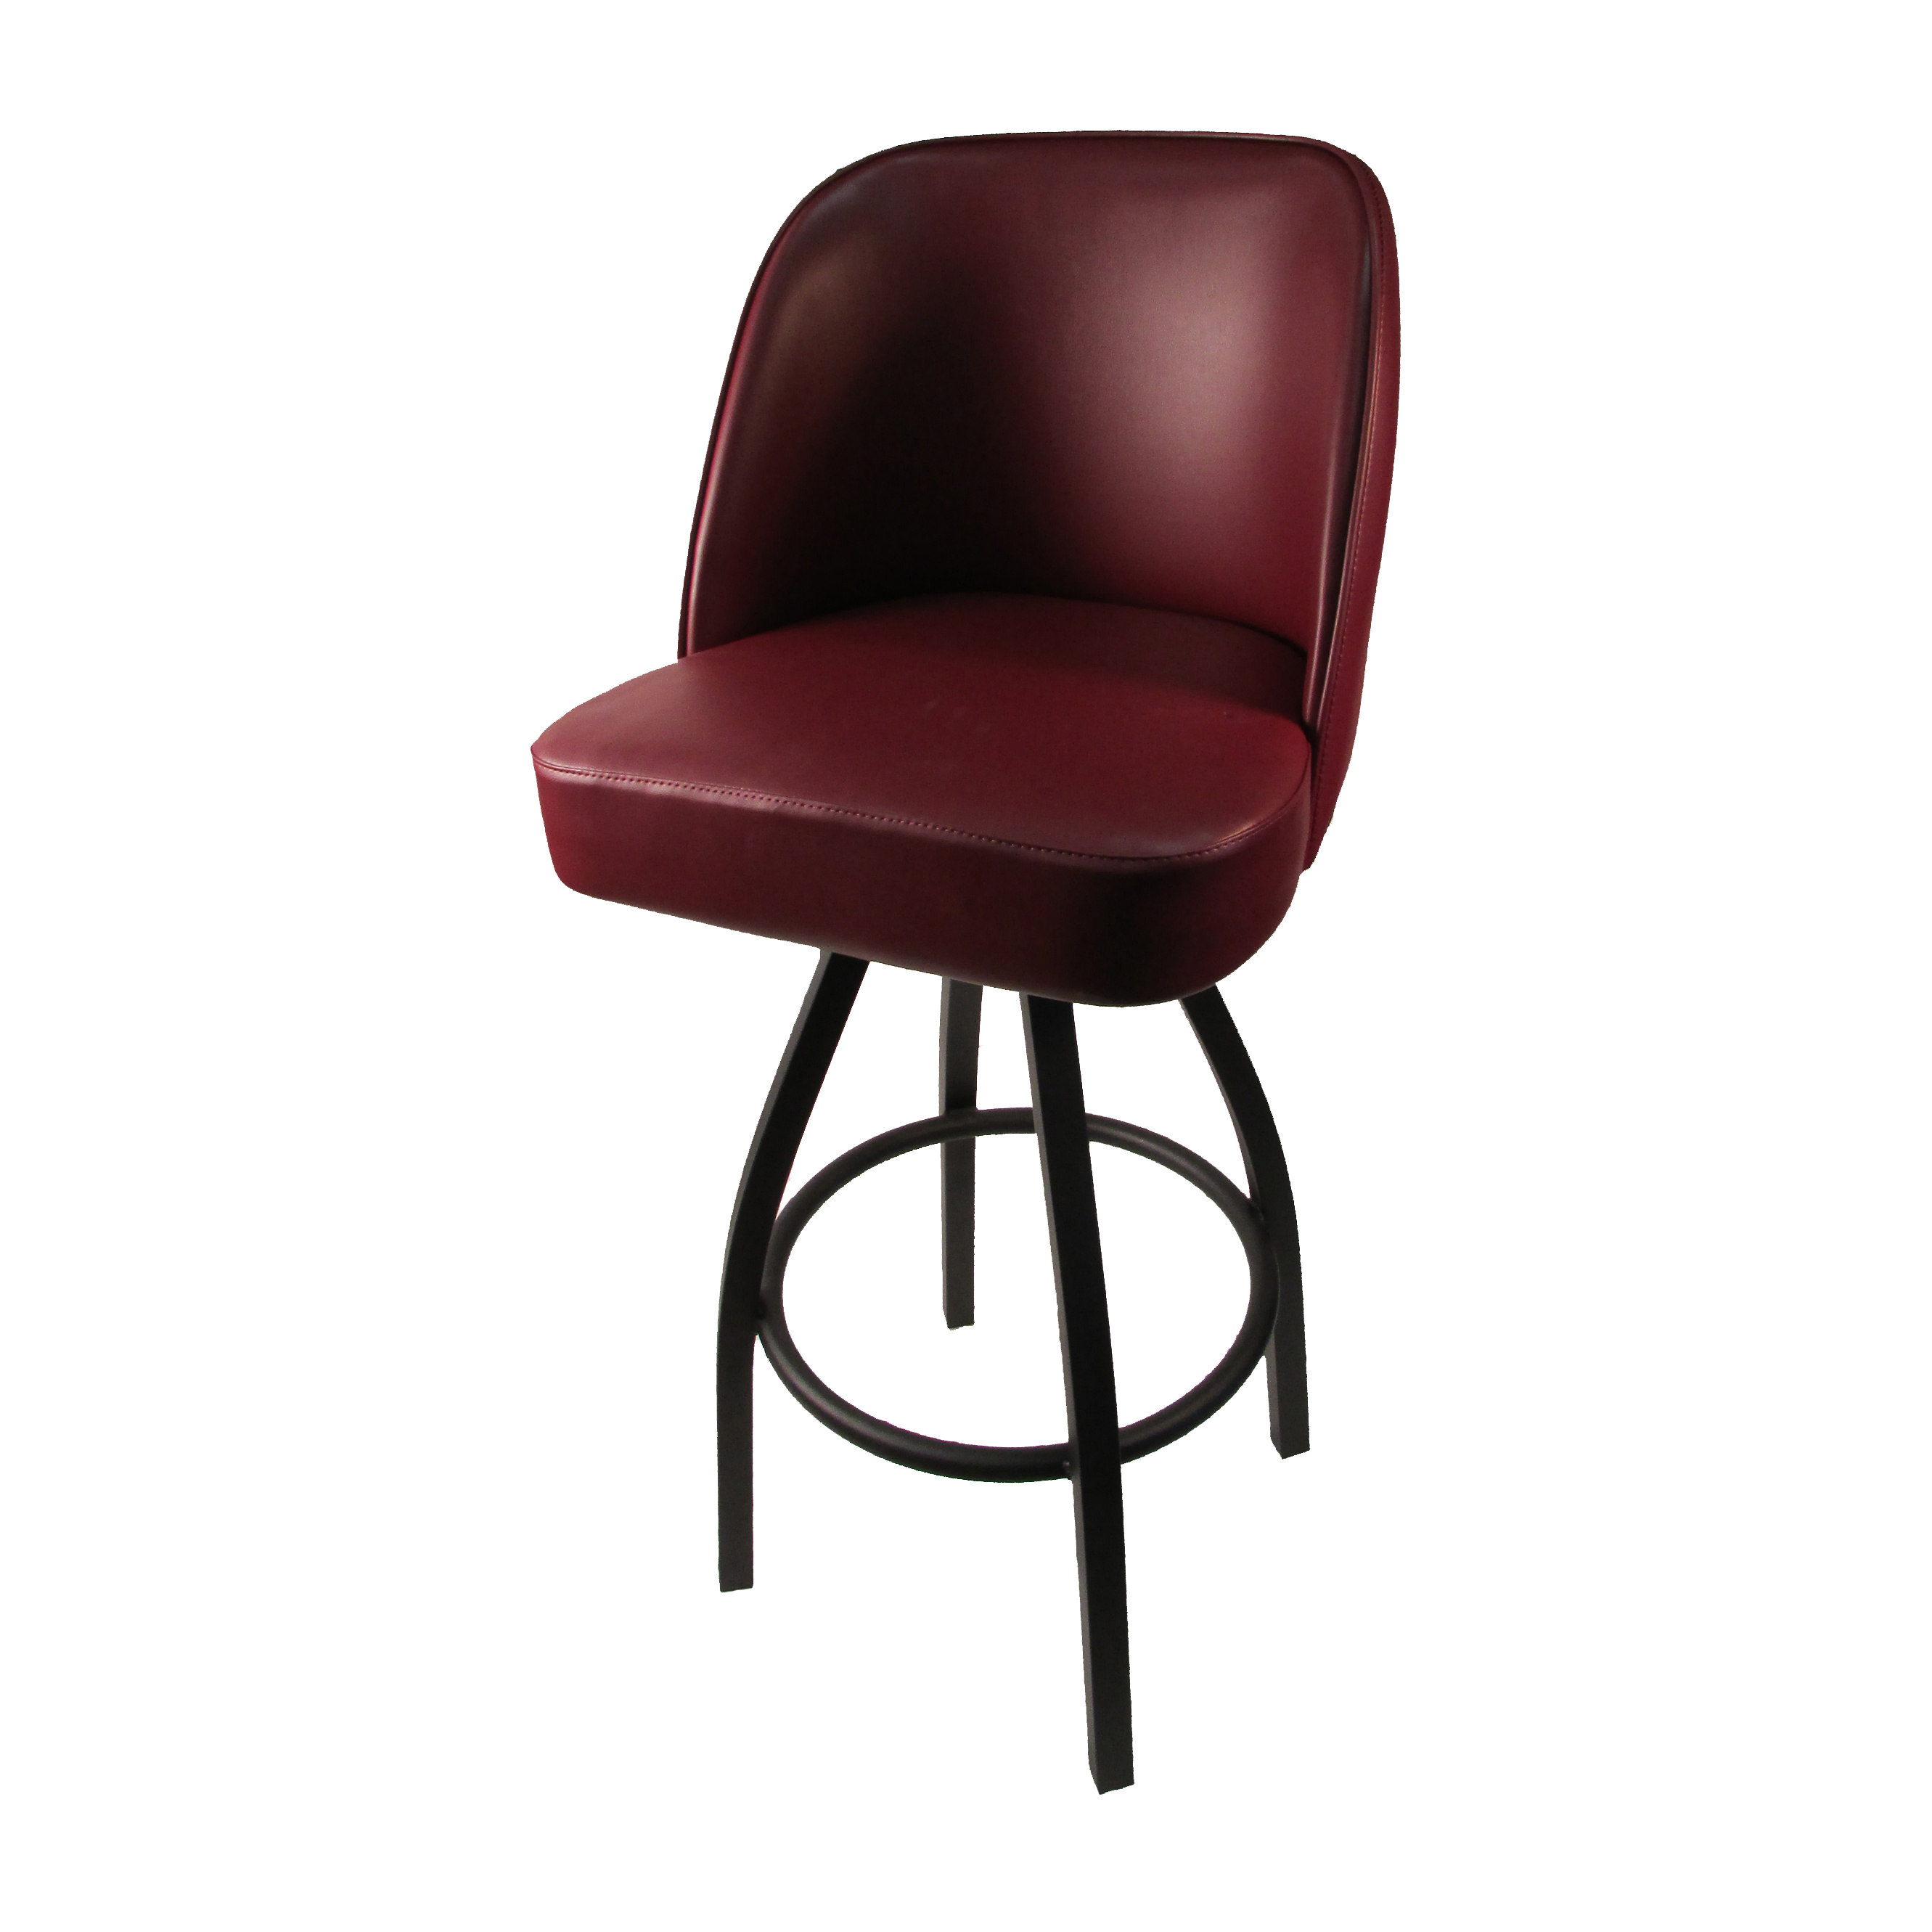 Oak Street SL3136-WINE bar stool, swivel, indoor